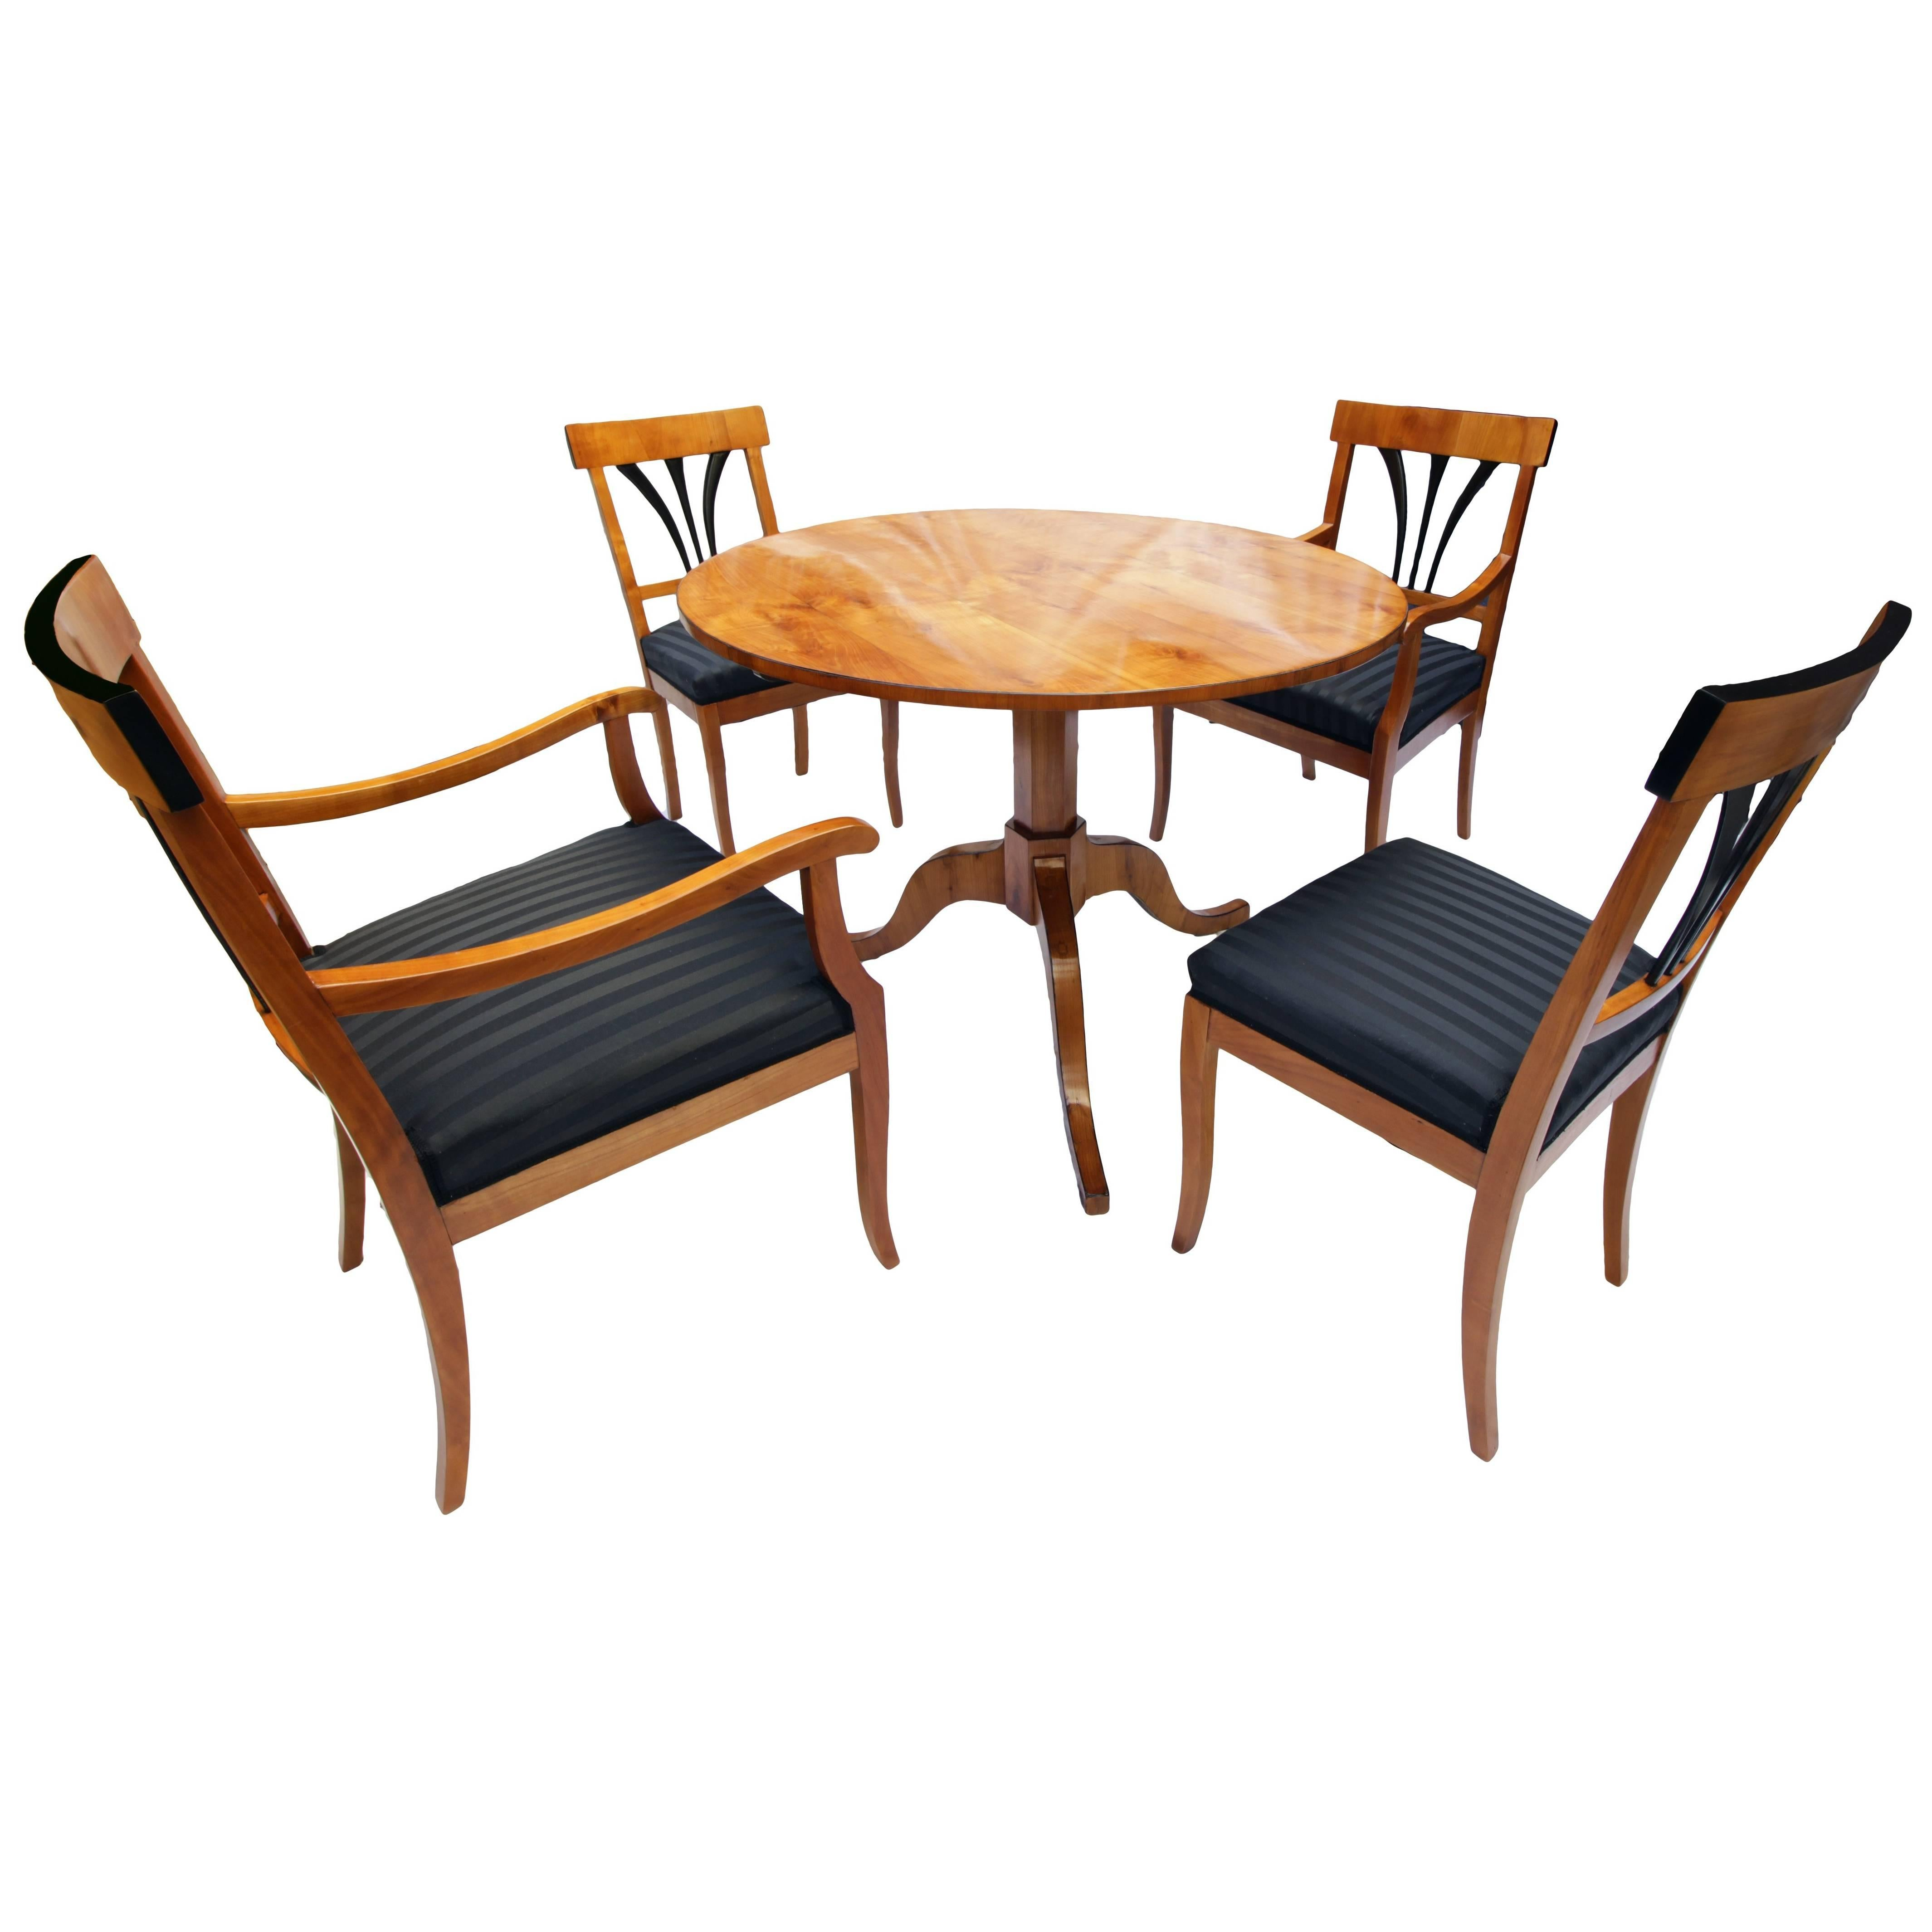 Biedermeier Table Group One Table Two Armchairs Two Chairs  sc 1 st  1stDibs & Danhauser Vienna Biedermeier Parlor Set Four Chairs Two Armchairs ...